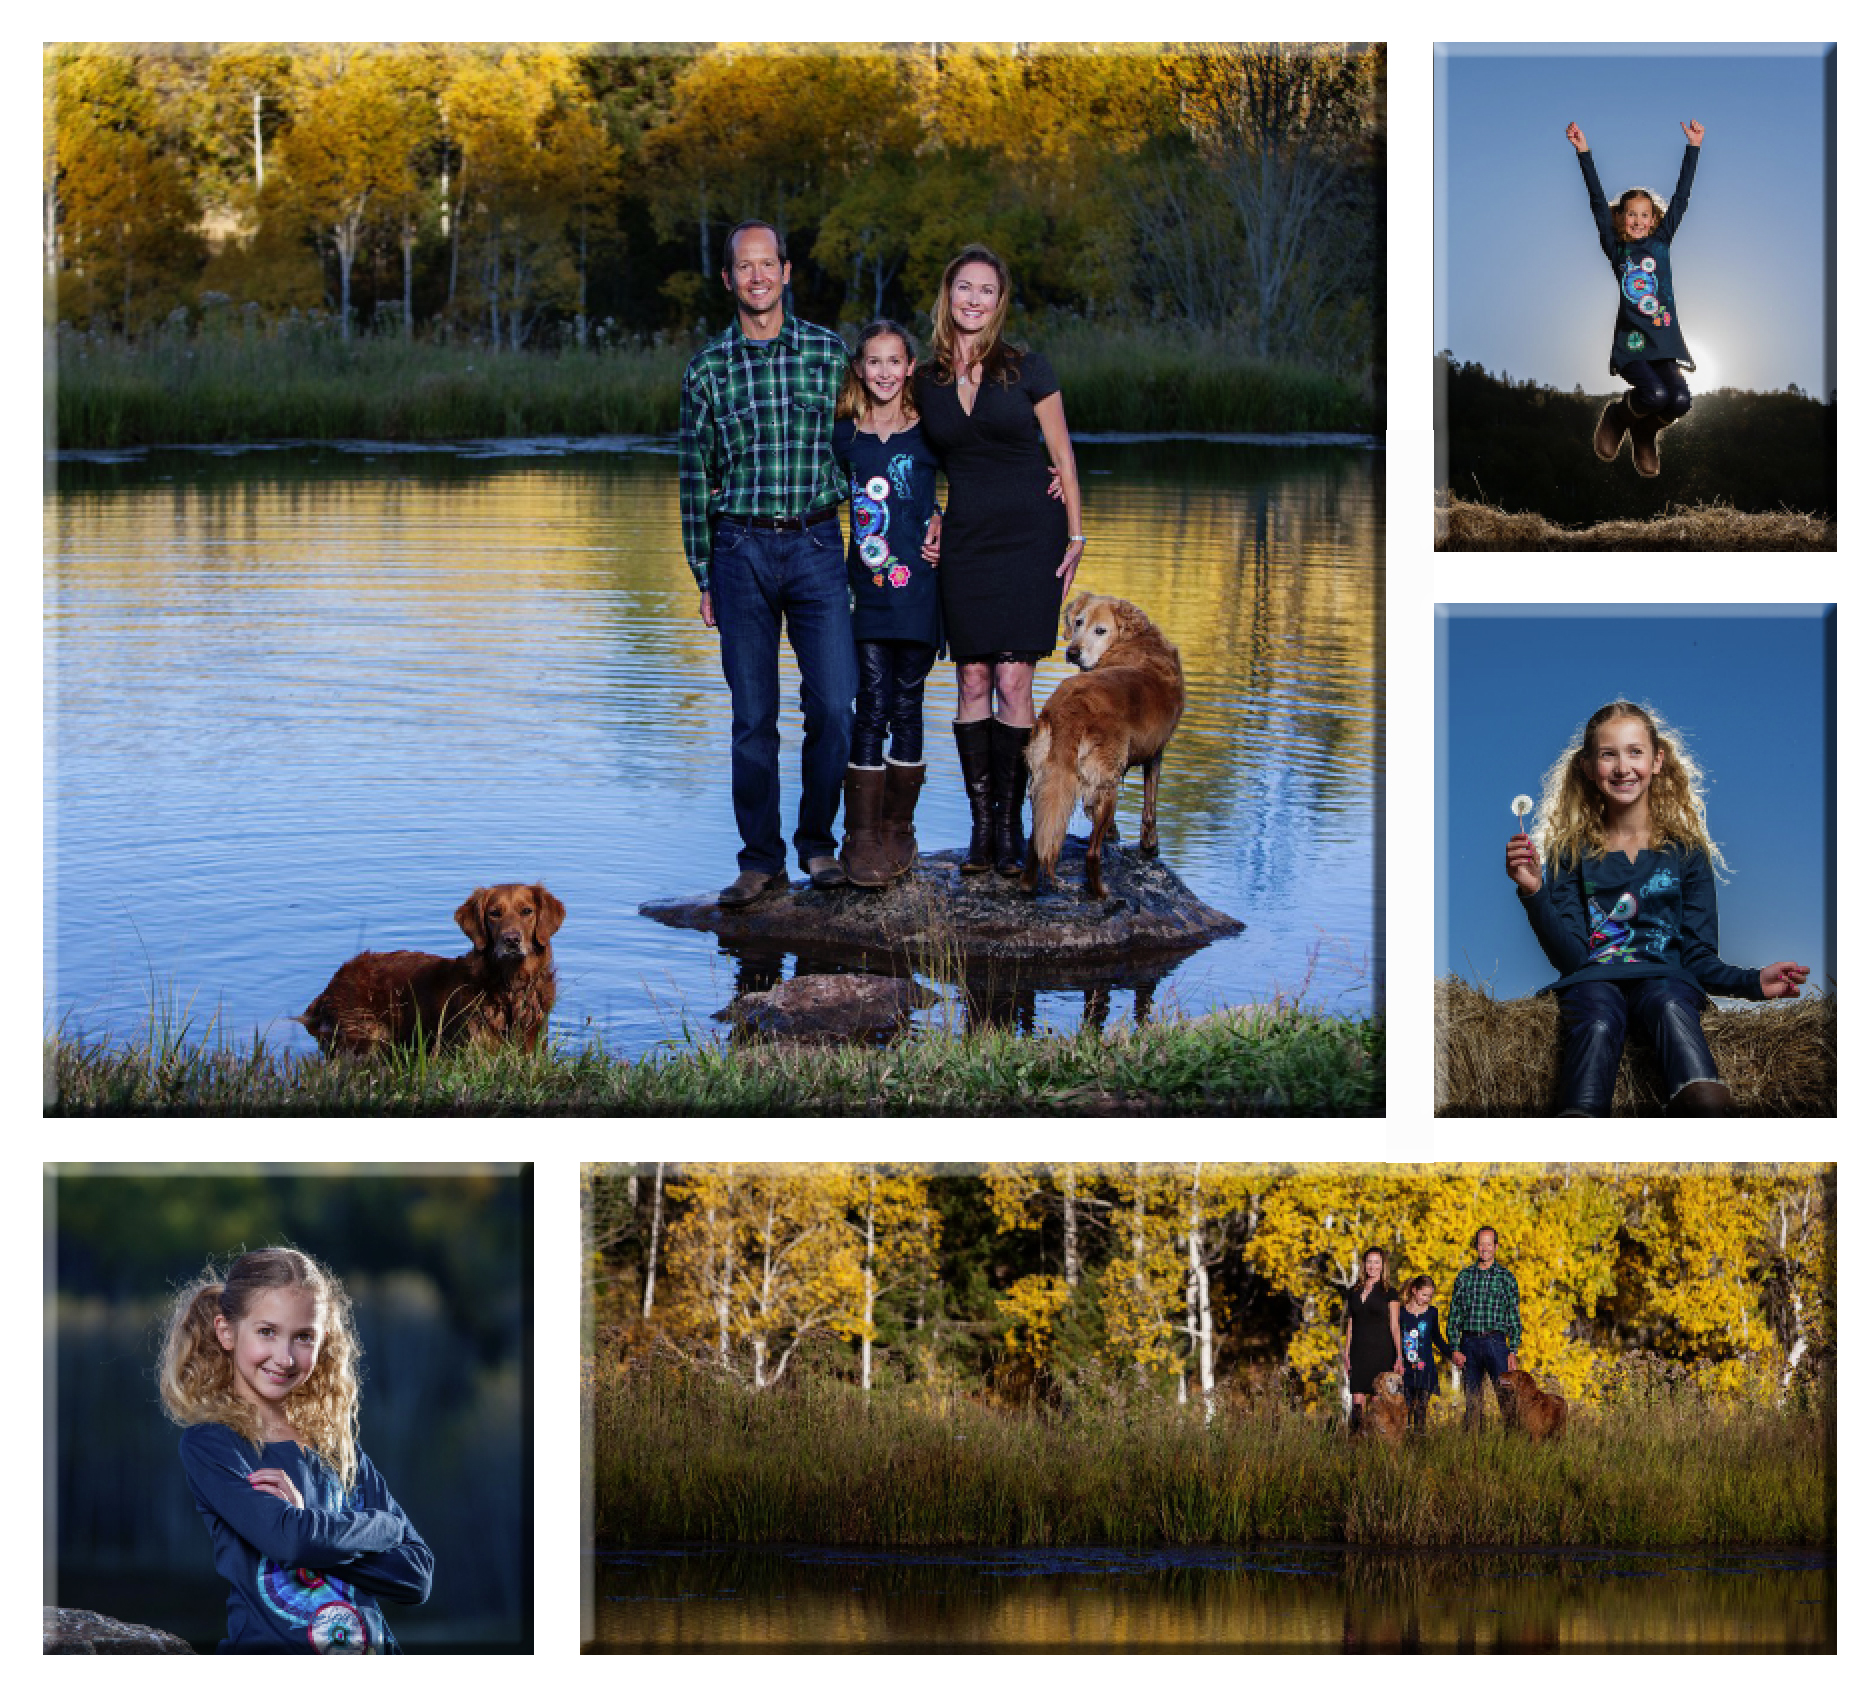 Collage of family photos taken at a lake in the fall.